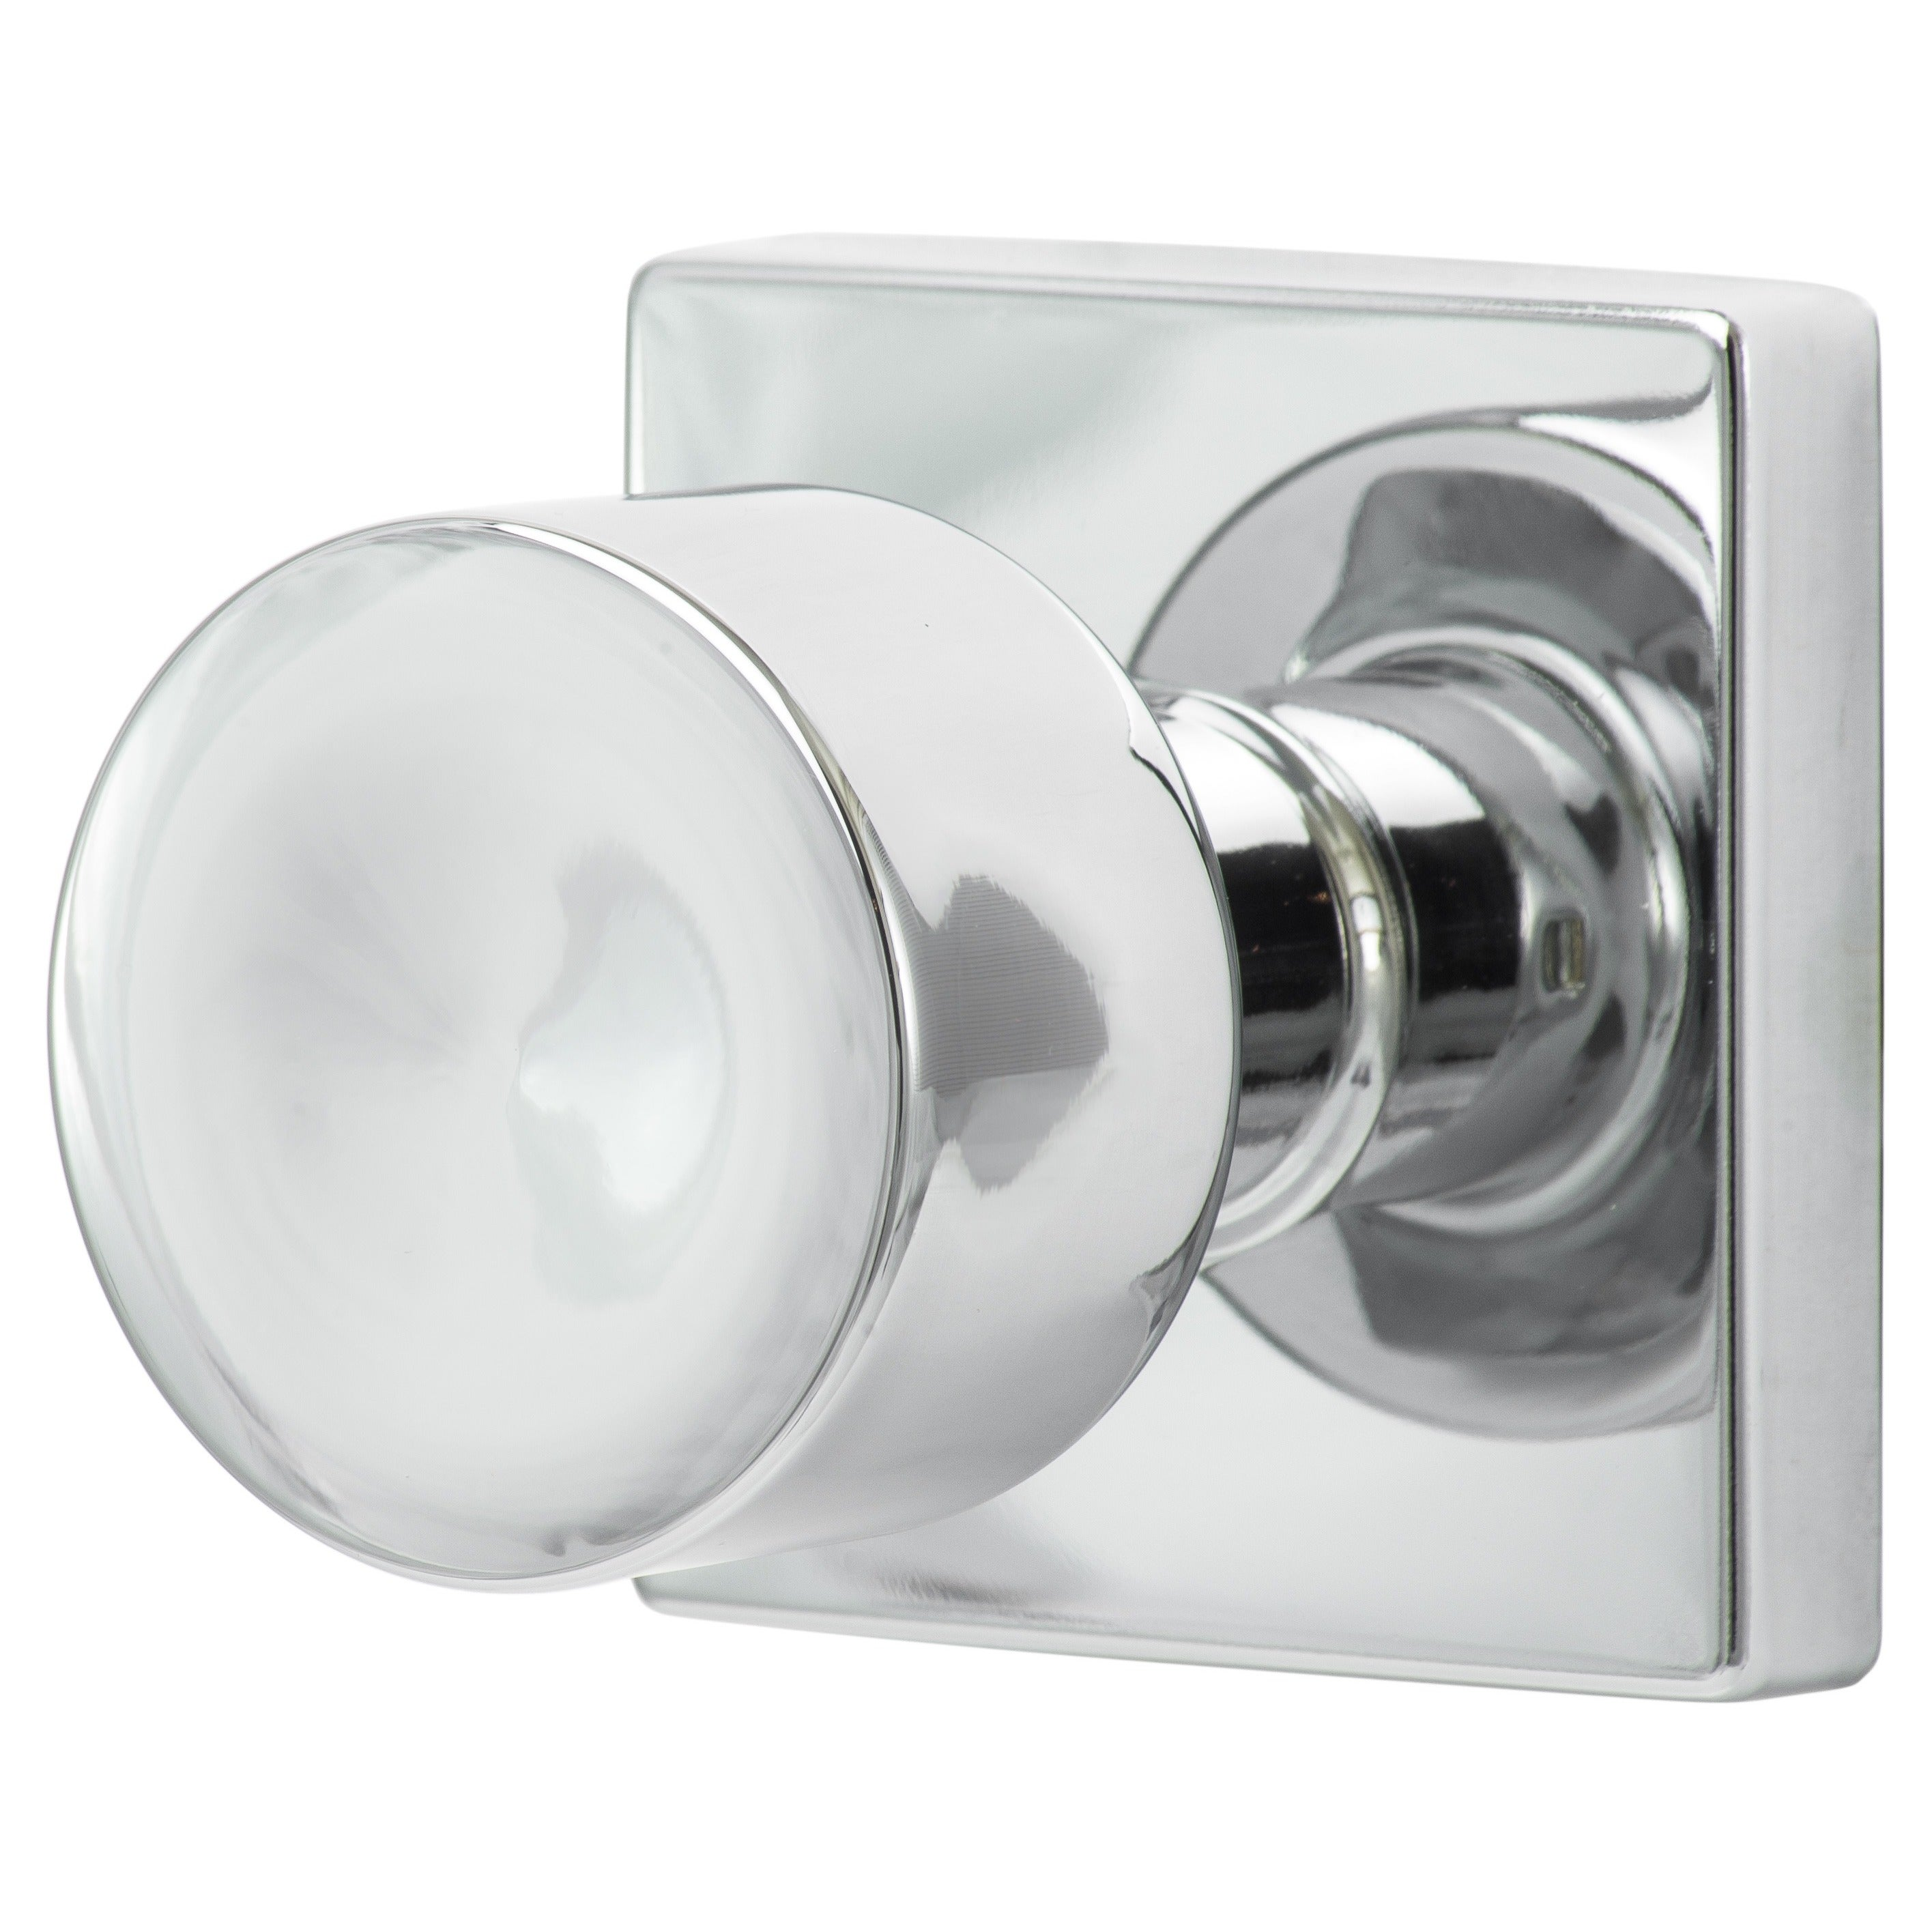 Sure Loc Bergen Polished Chrome Door Knob With Square Rose Plate   Free  Shipping On Orders Over $45   Overstock   16896199